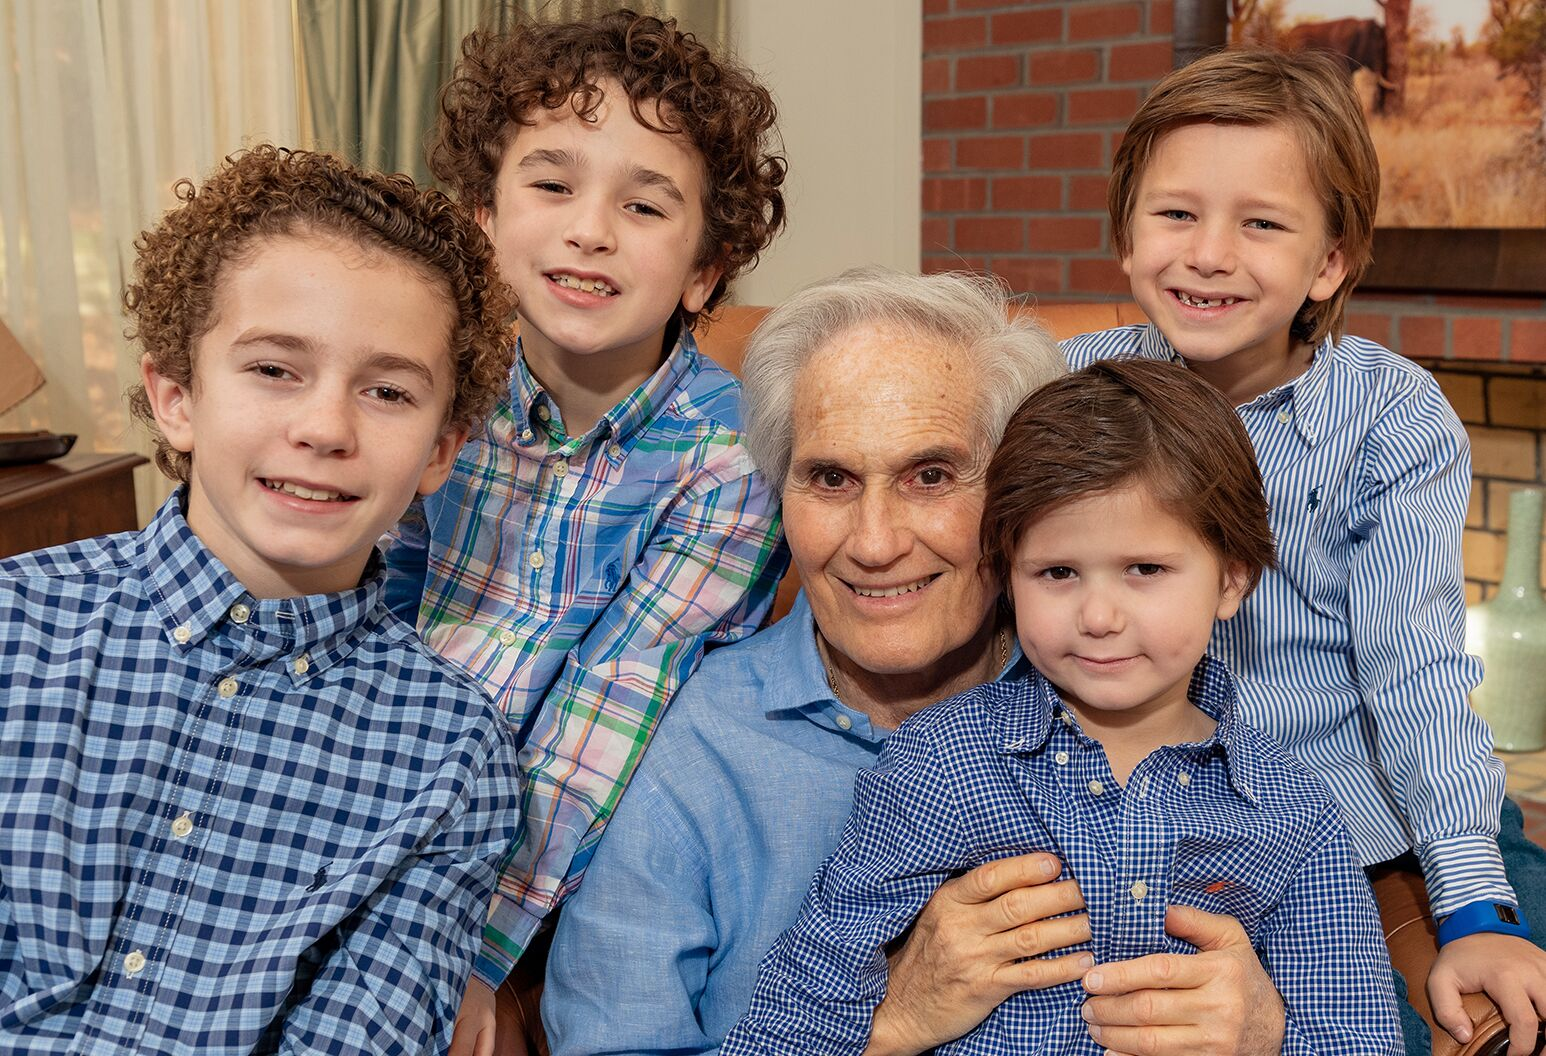 A man in his late 70s poses with his four school-aged grandsons. Everyone is wearing blue.